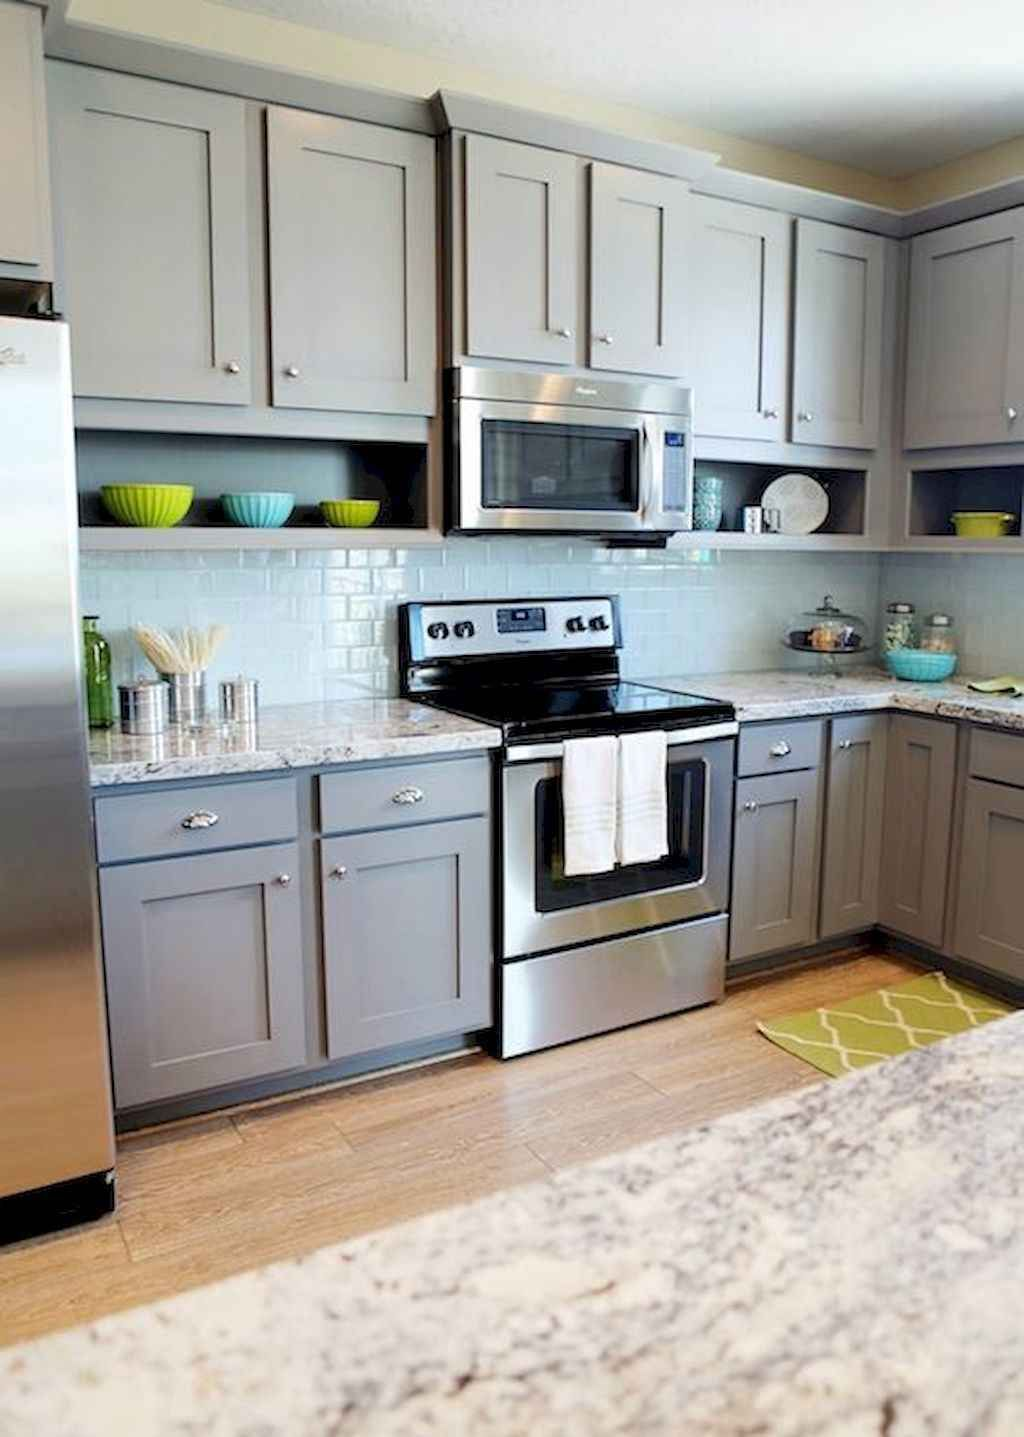 01 gorgeous gray kitchen cabinet makeover design ideas in 2020 shaker style kitchen cabinets on kitchen decor grey cabinets id=92737